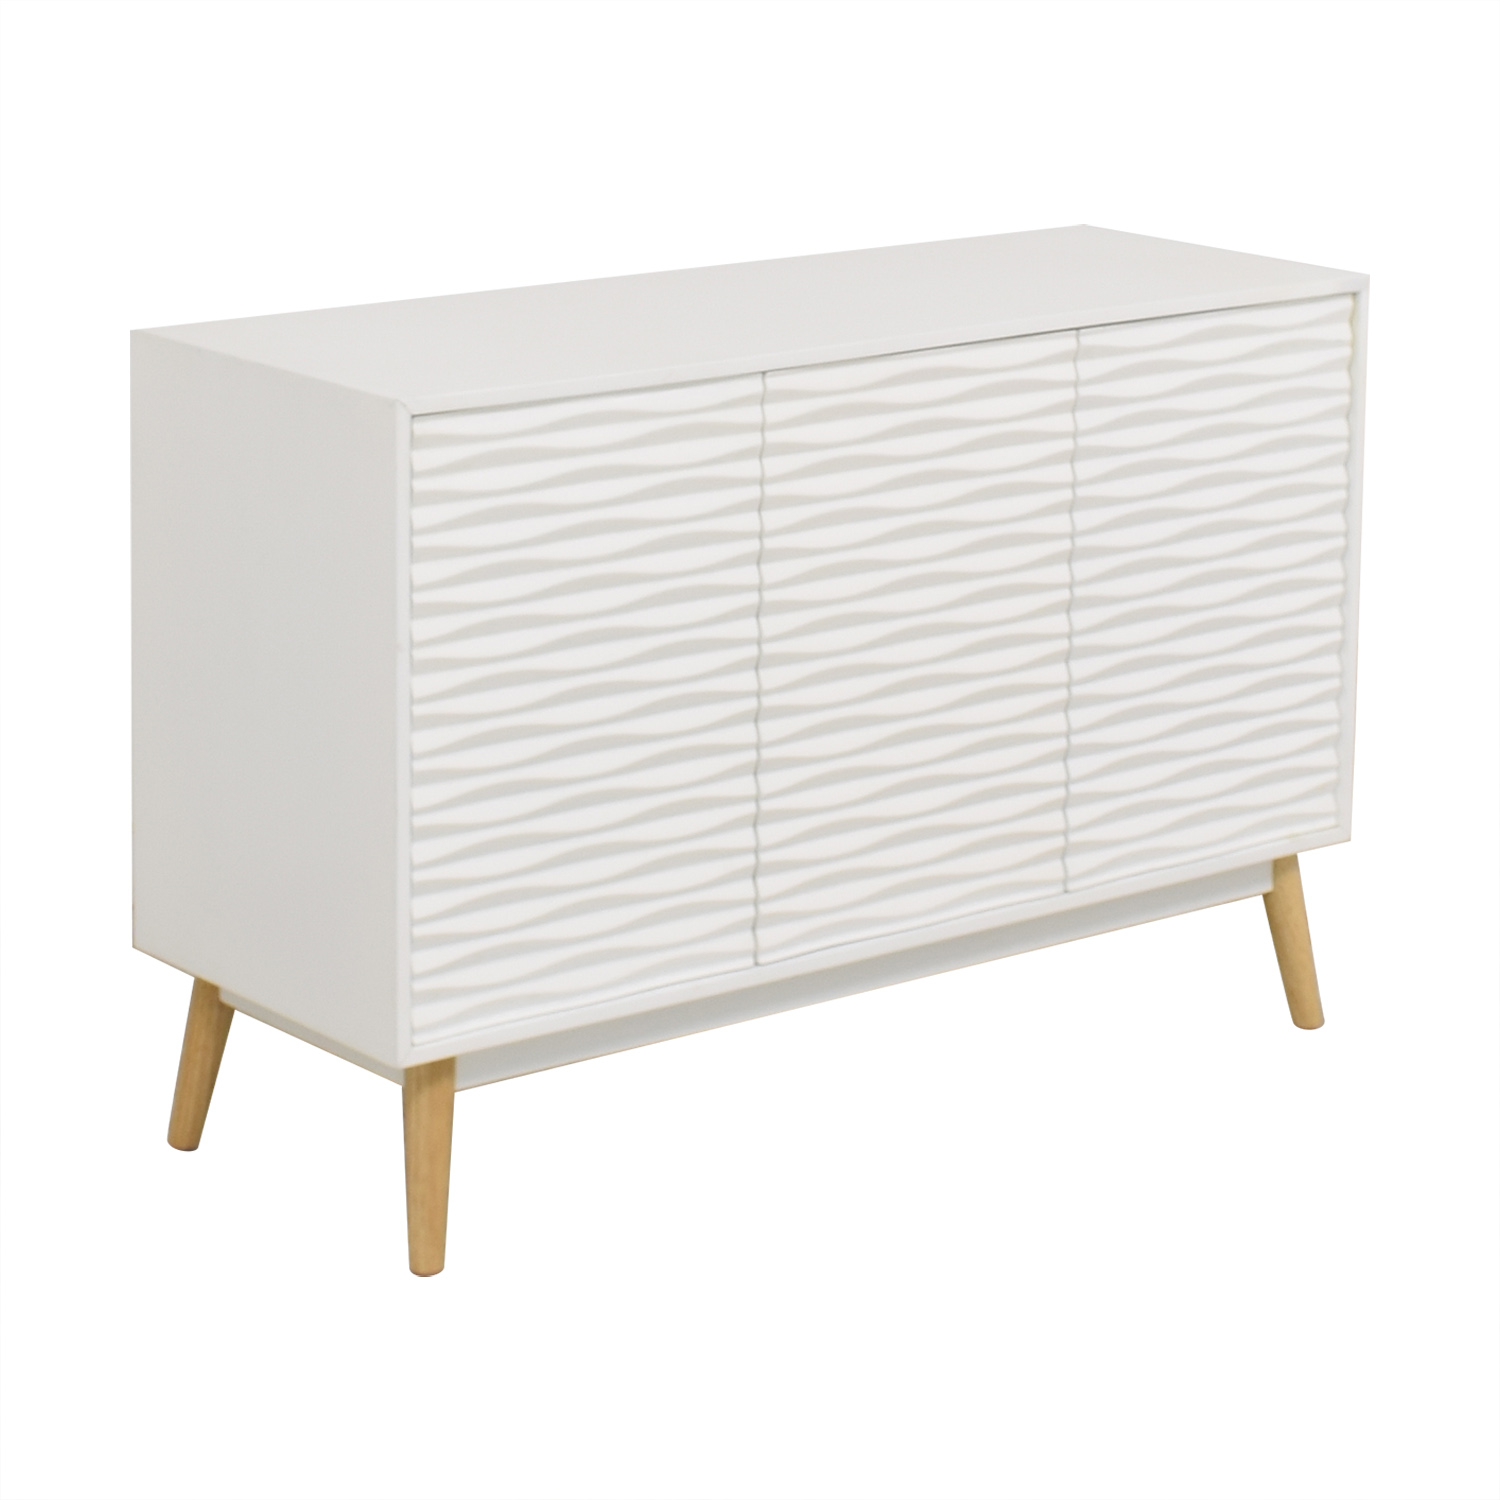 Elle Home Elle Decor Aurie Sideboard French White ma